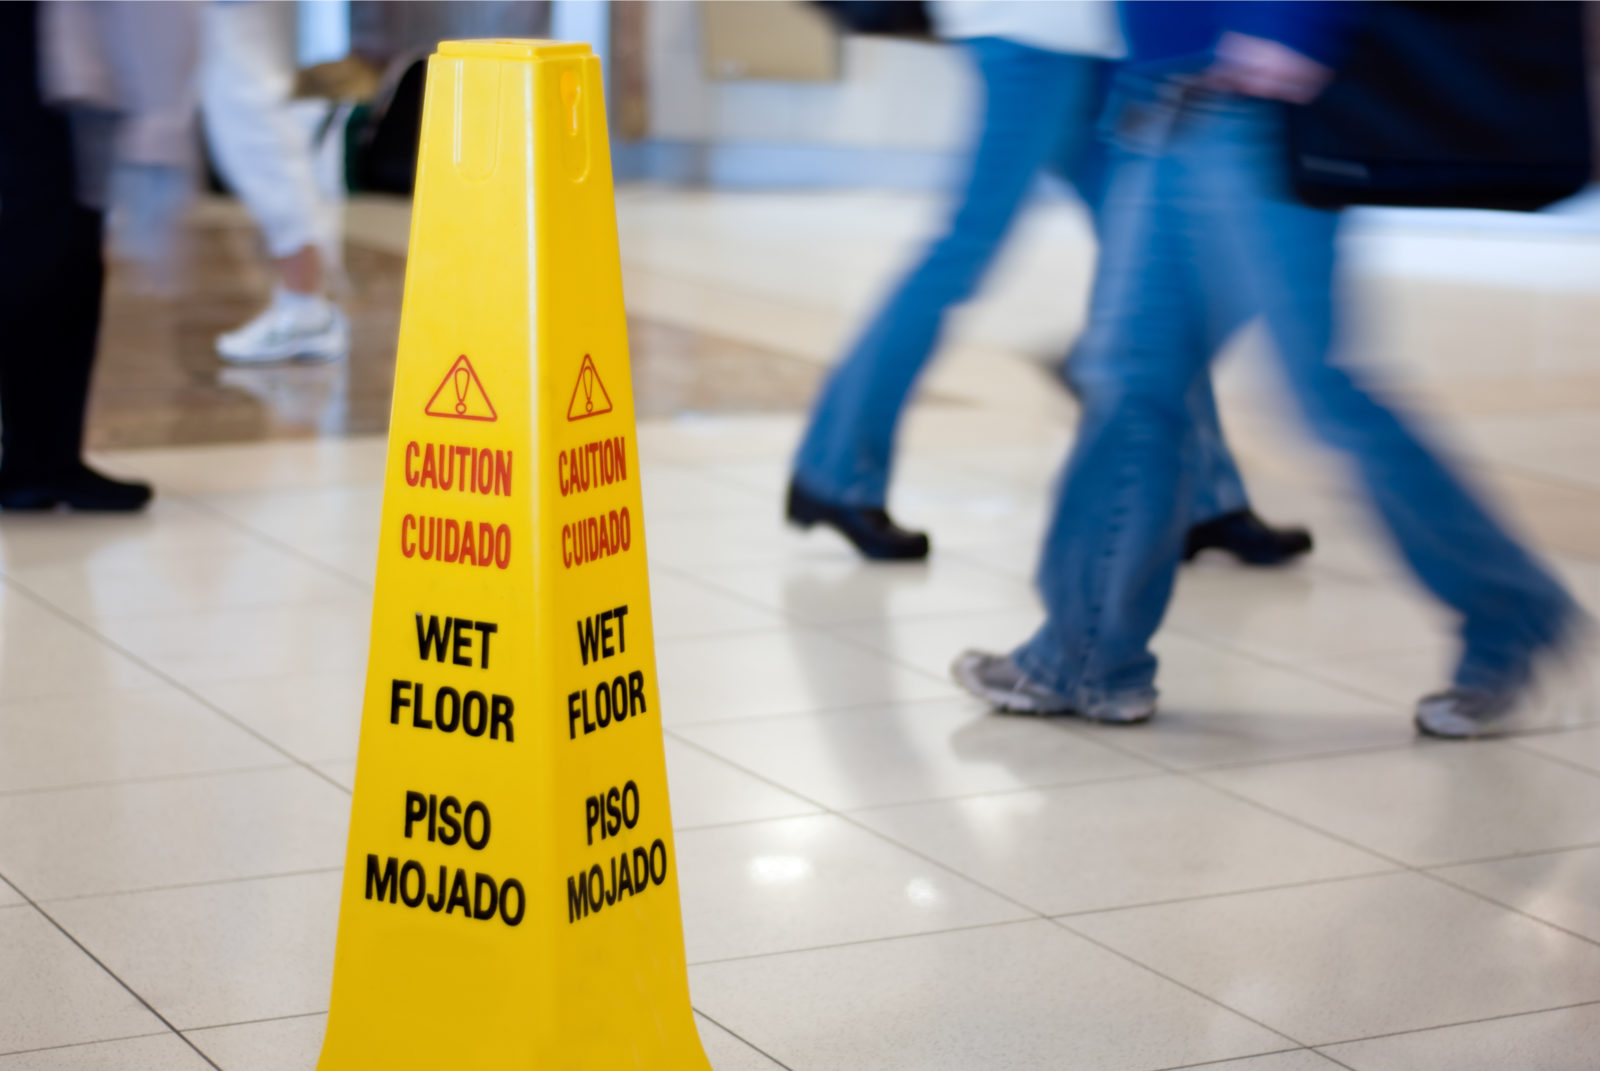 Caution Wet Floor sign with people walking in the background. Understanding Slip and Fall Accidents and Negligence Law Suits in Georgia.